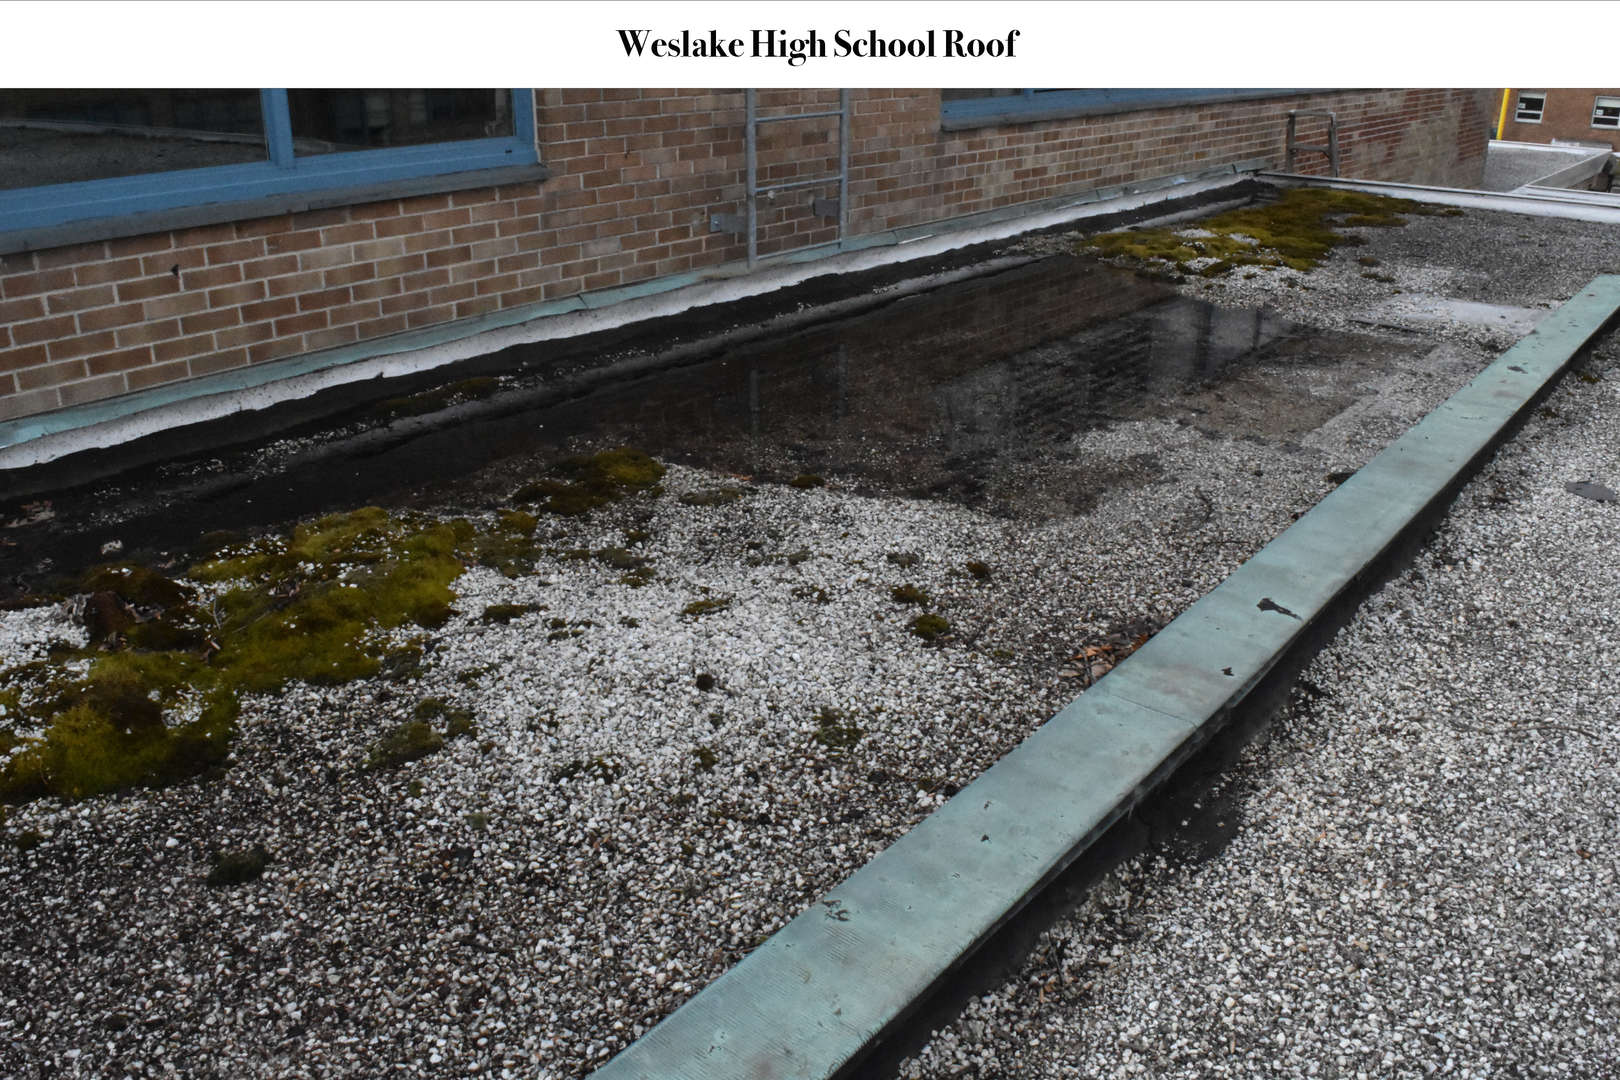 WHS Roof before renovation covered in gravel and flood water